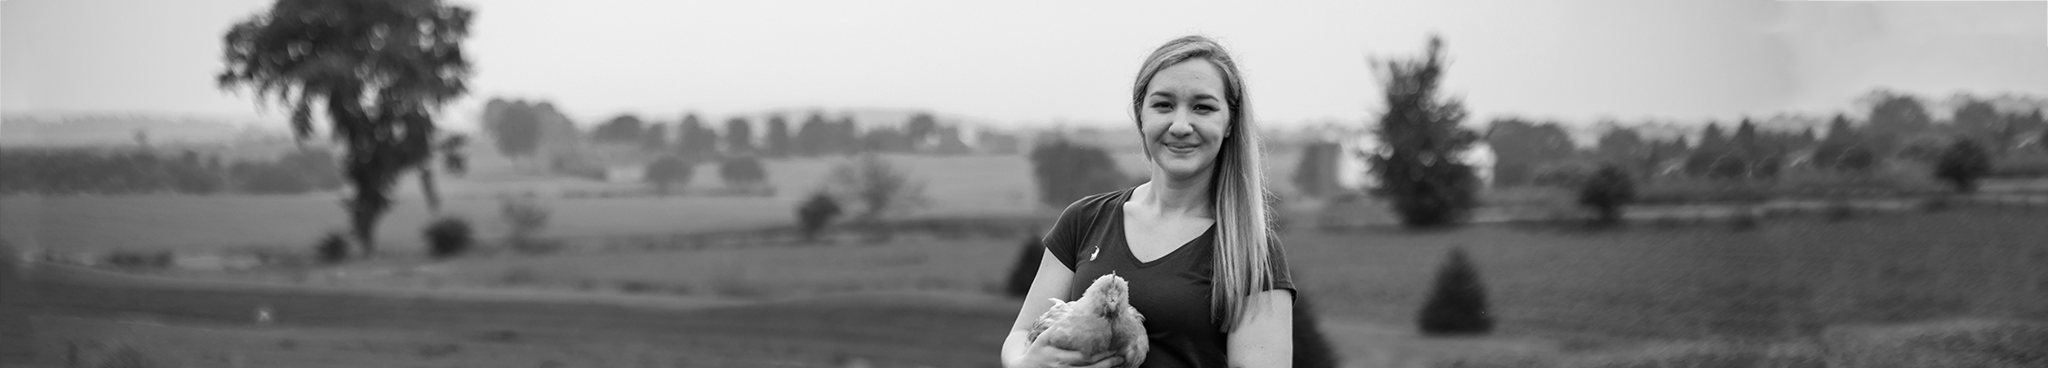 Margo OF BELL & EVANS IN FREDERICKSBURG, PA. TRUSTED SUPPLIER OF FREE-RUN CHICKEN.